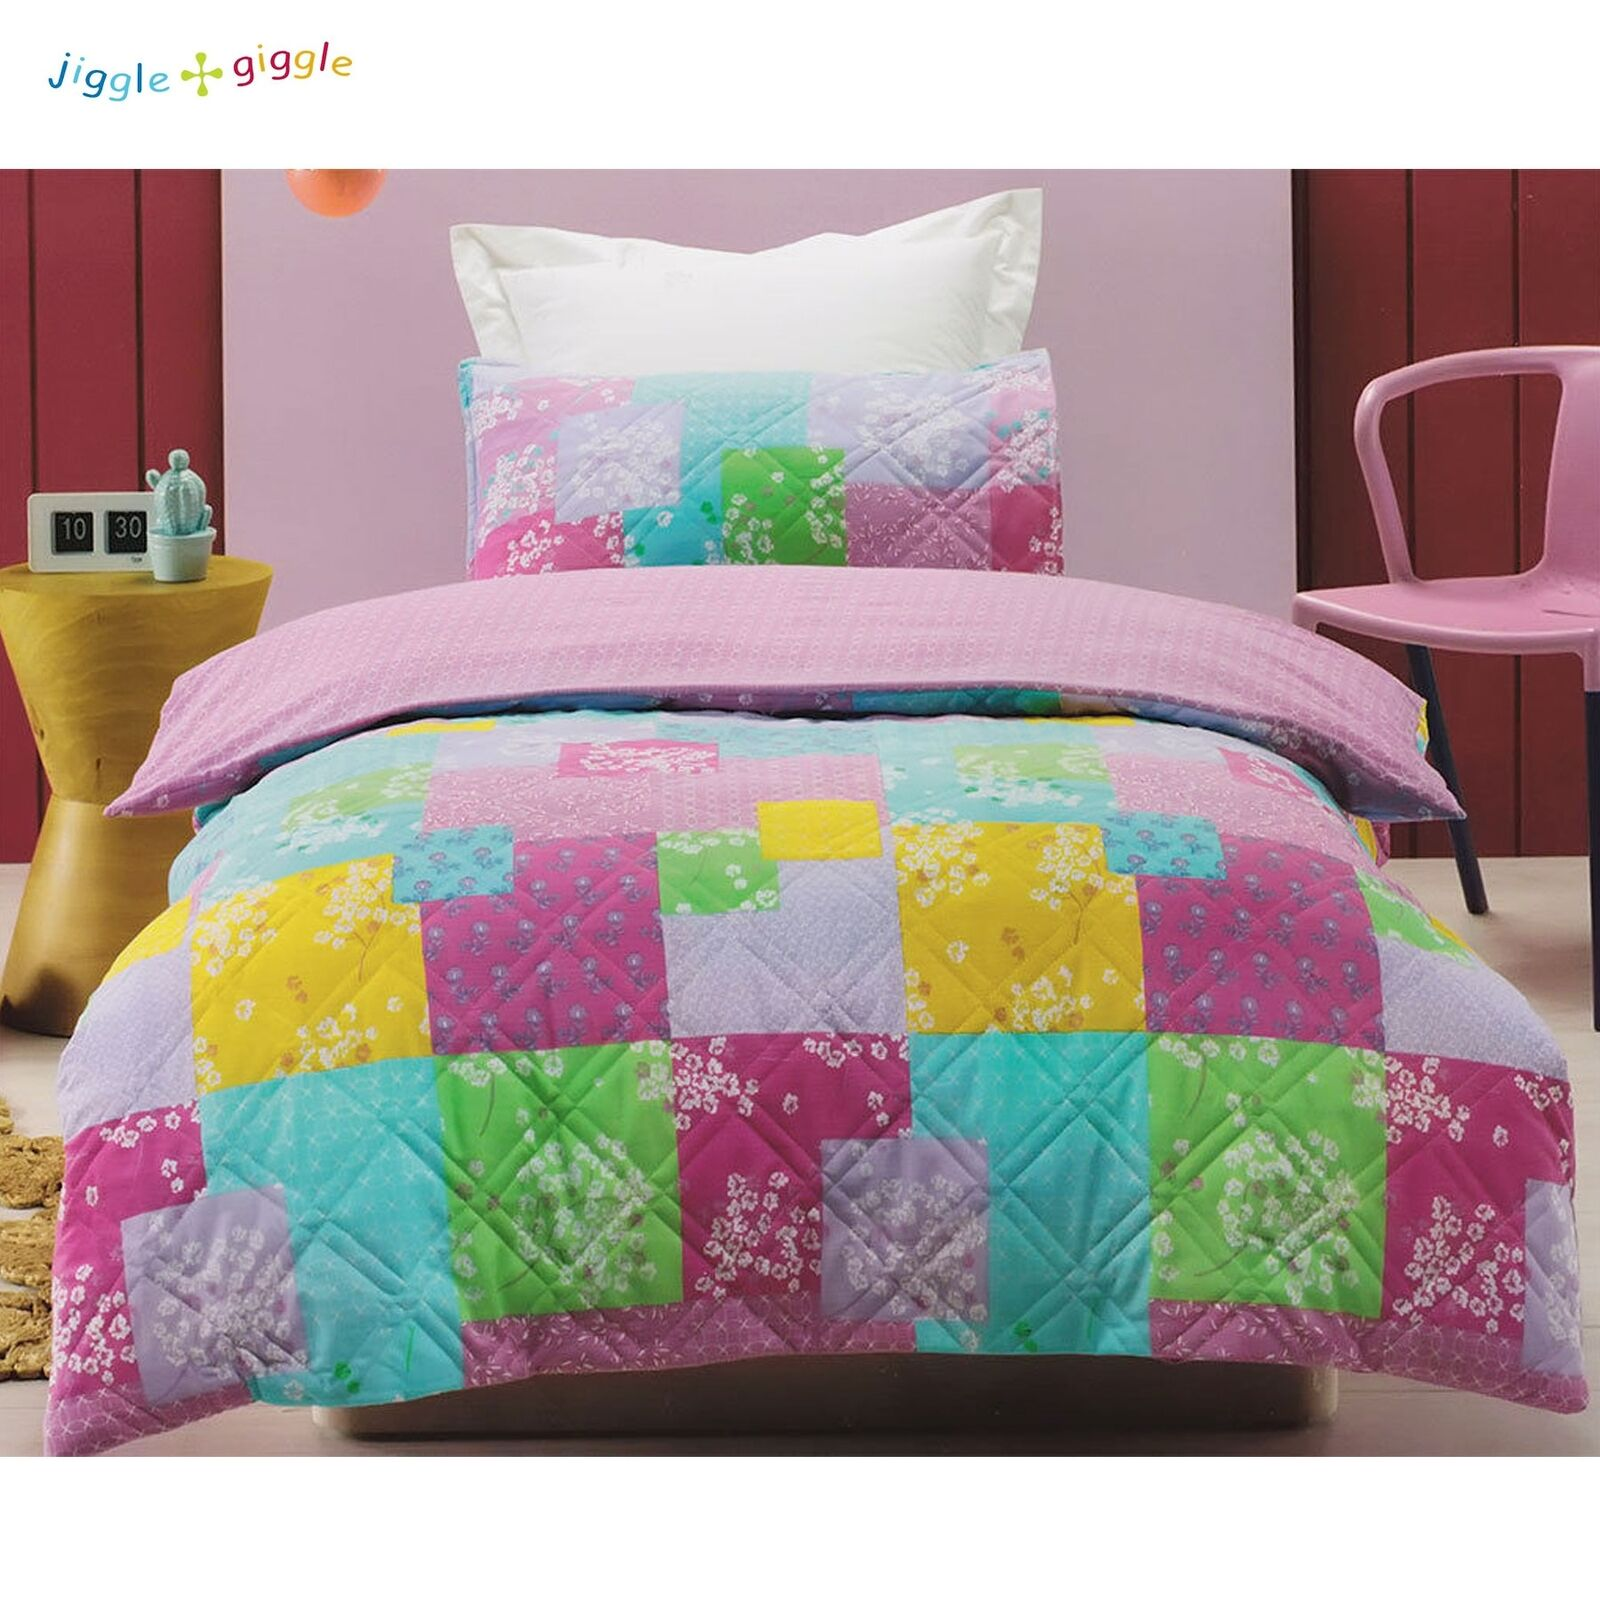 Bella Lightly Quilted Quilt Cover Set by Jiggle & Giggle